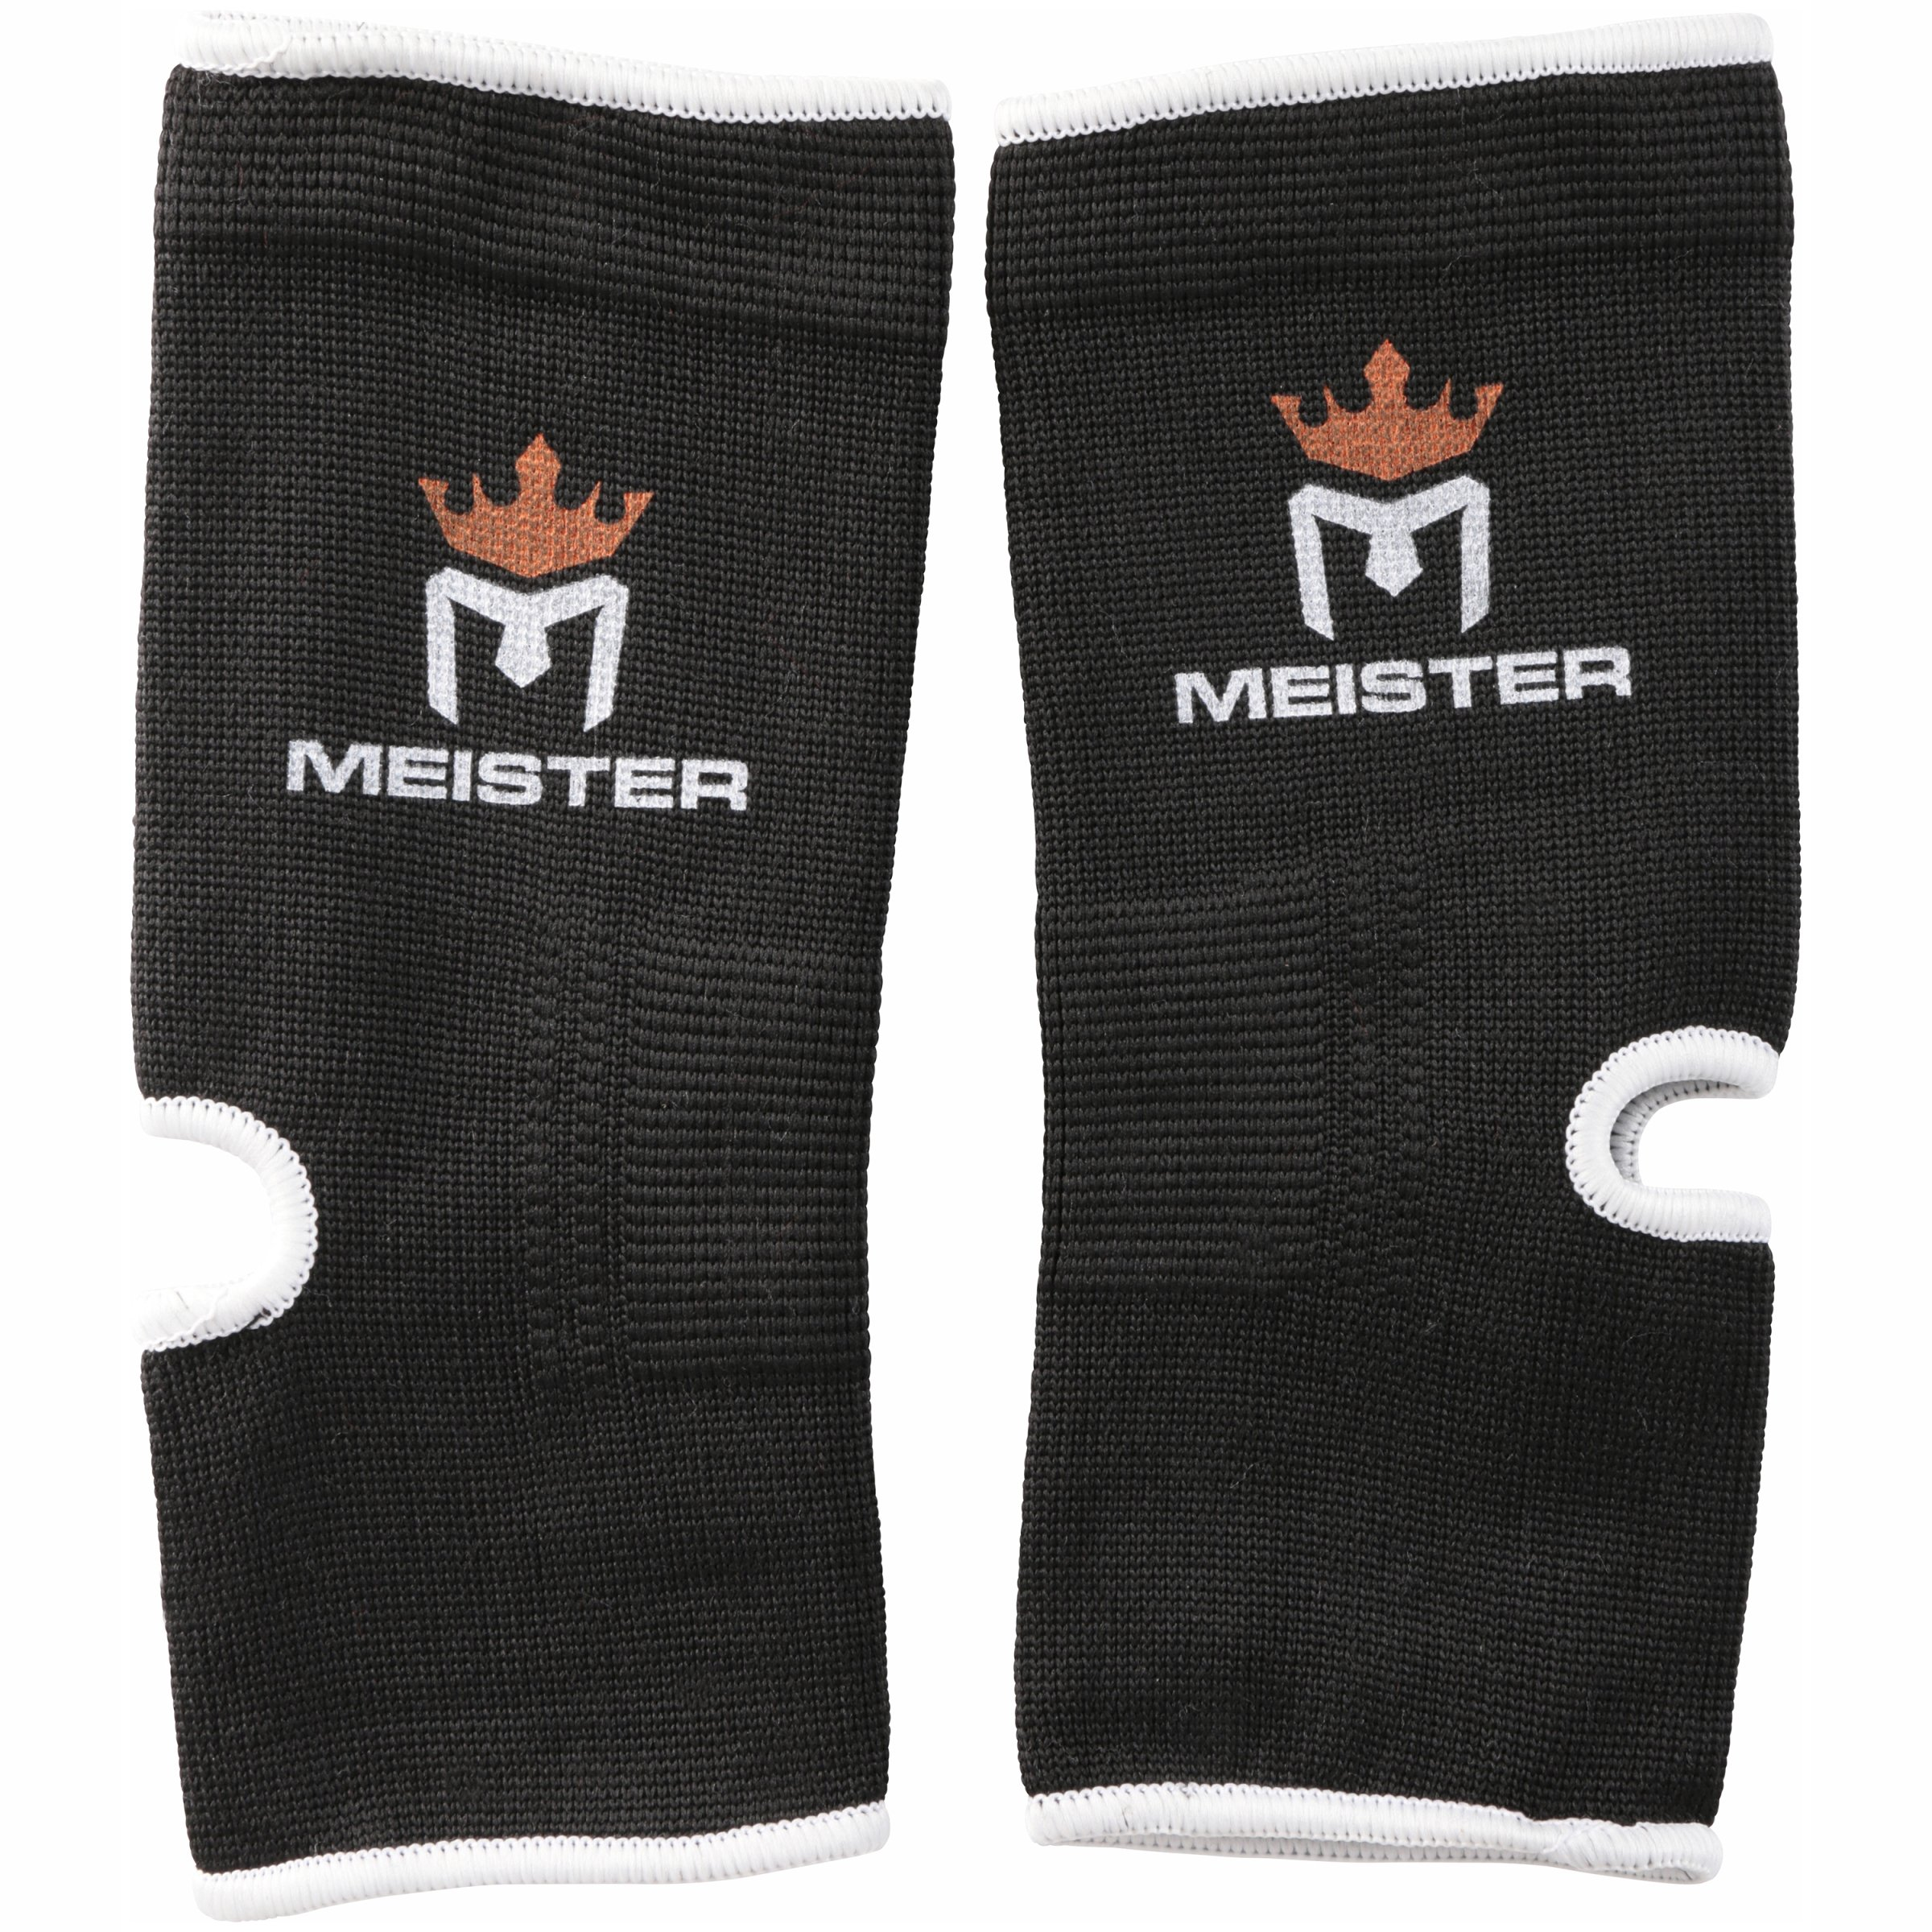 Meister® Adult Ankle Support 1 pr Bag